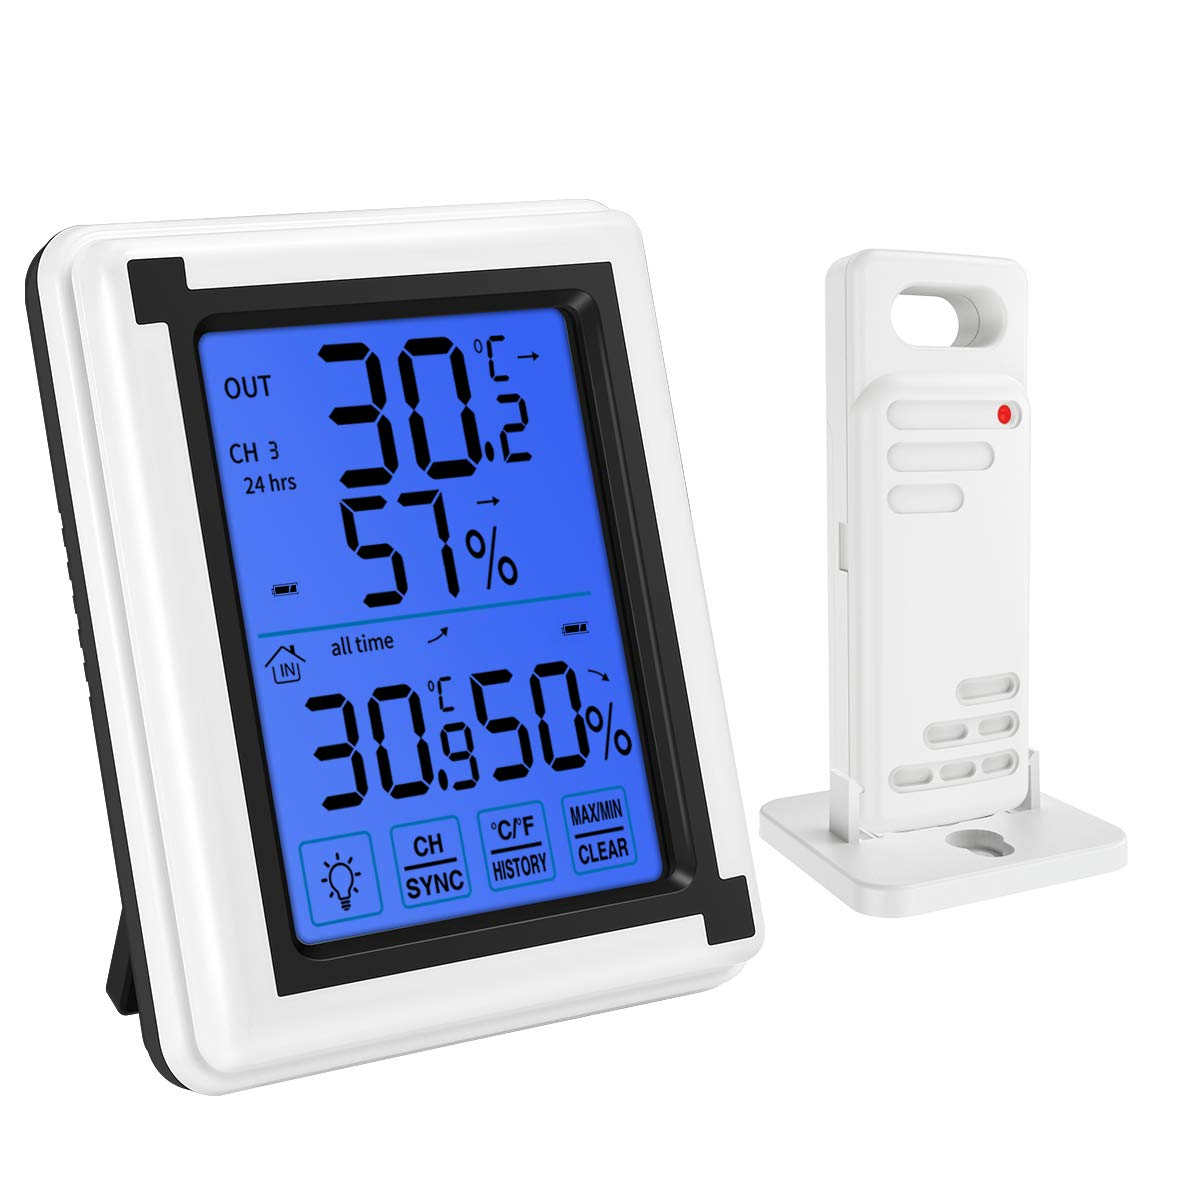 KeeKit Indoor Outdoor Thermometer, Digital Temperature Humidity Monitor with Sensor, Wireless Hygrometer Gauge Meter with Touch LCD Backlight, MAX/MIN Record for Home, Office, Baby Room - White